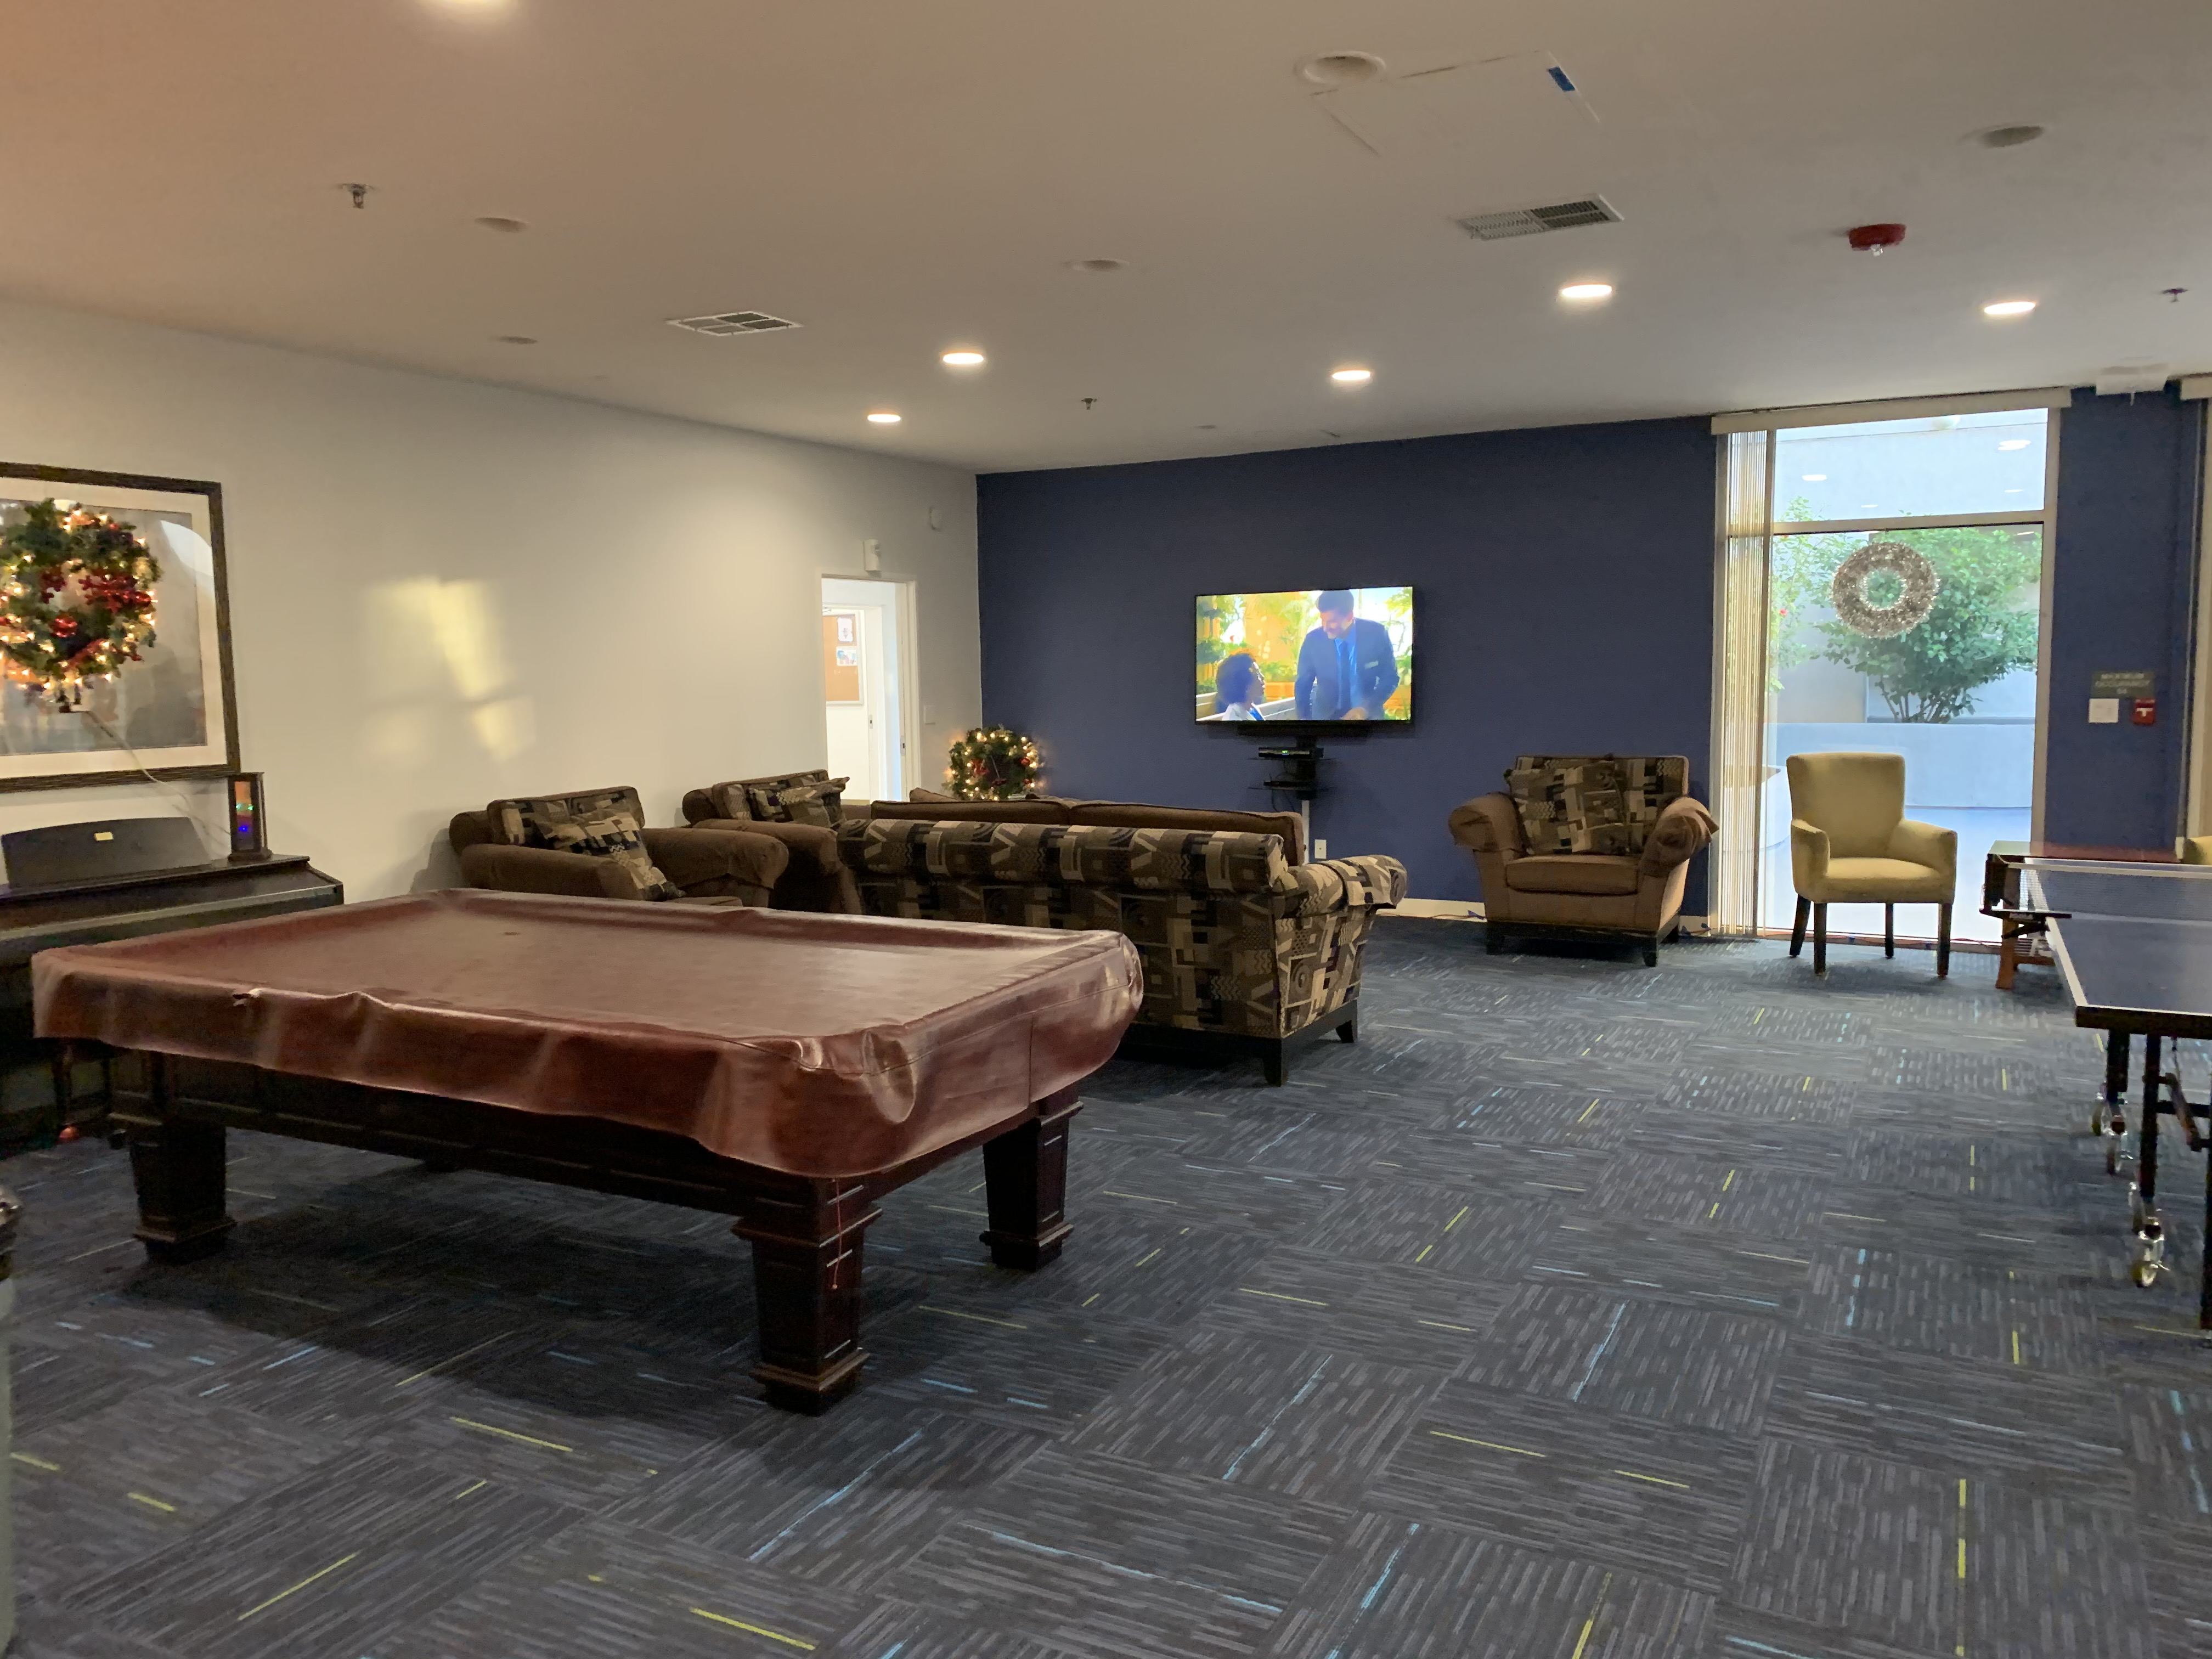 Community room that has a pool table, ping pong table, a piano, sofas, and a flat screen TV. There is a large window with vertical blinds.